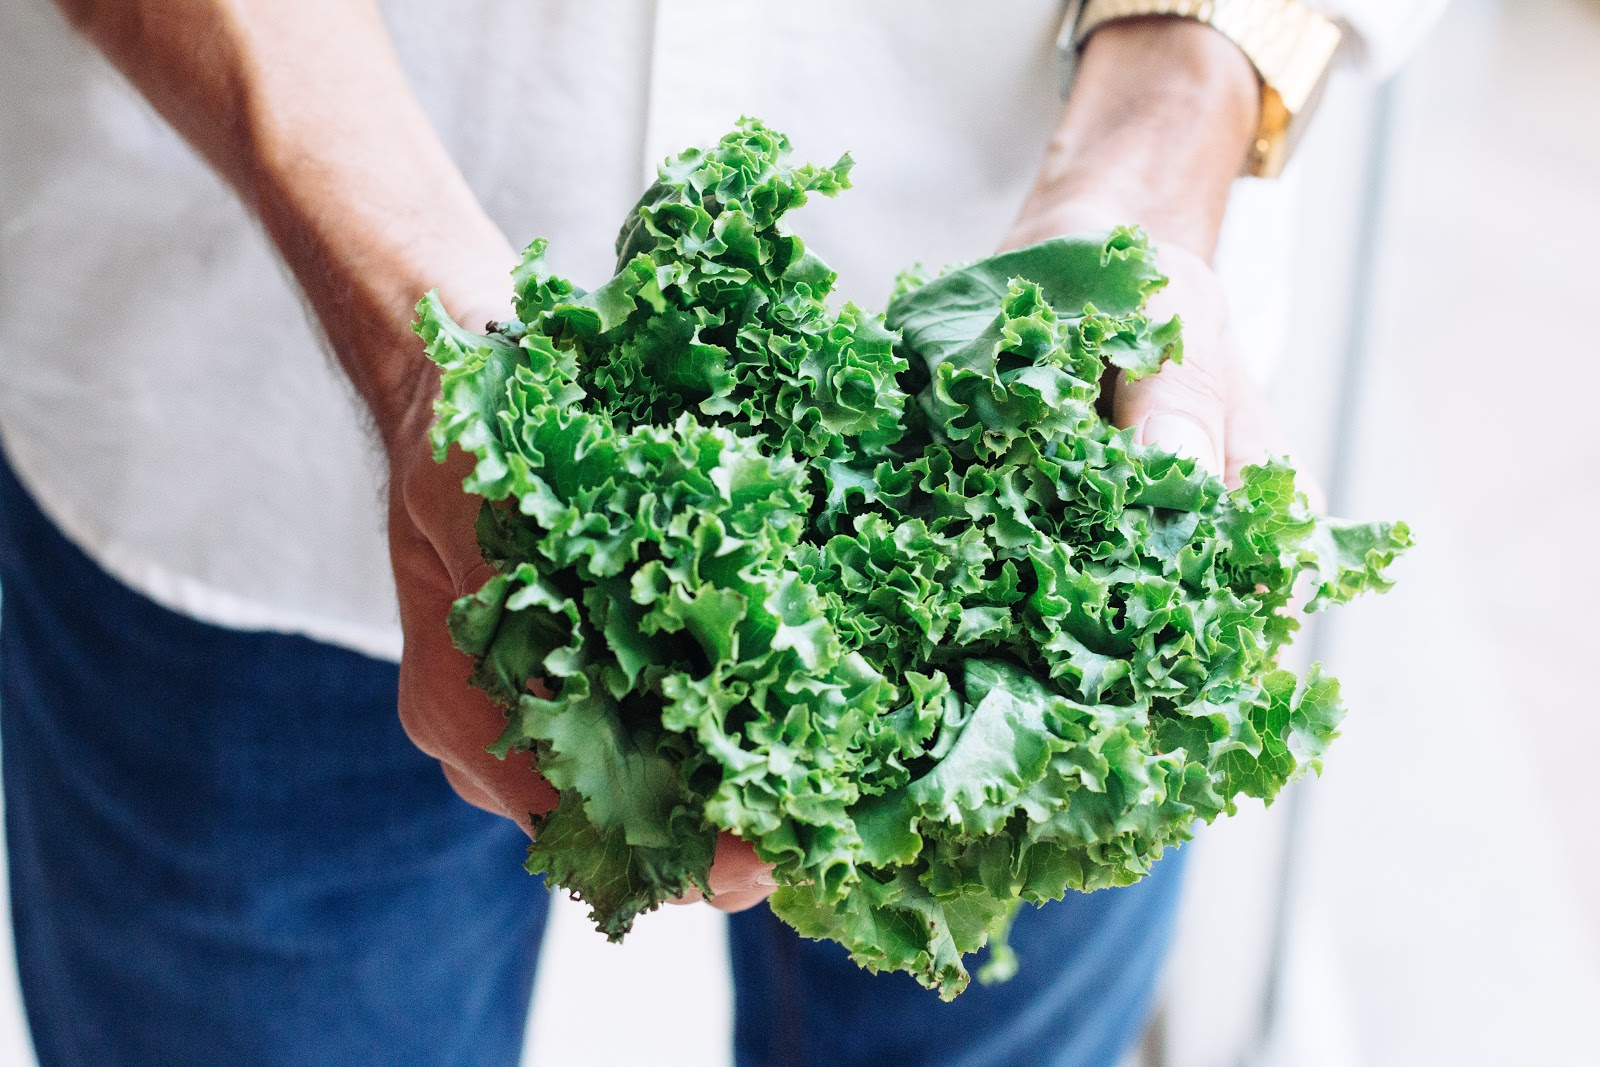 a woman holding one of the high-vibrations foods - kale